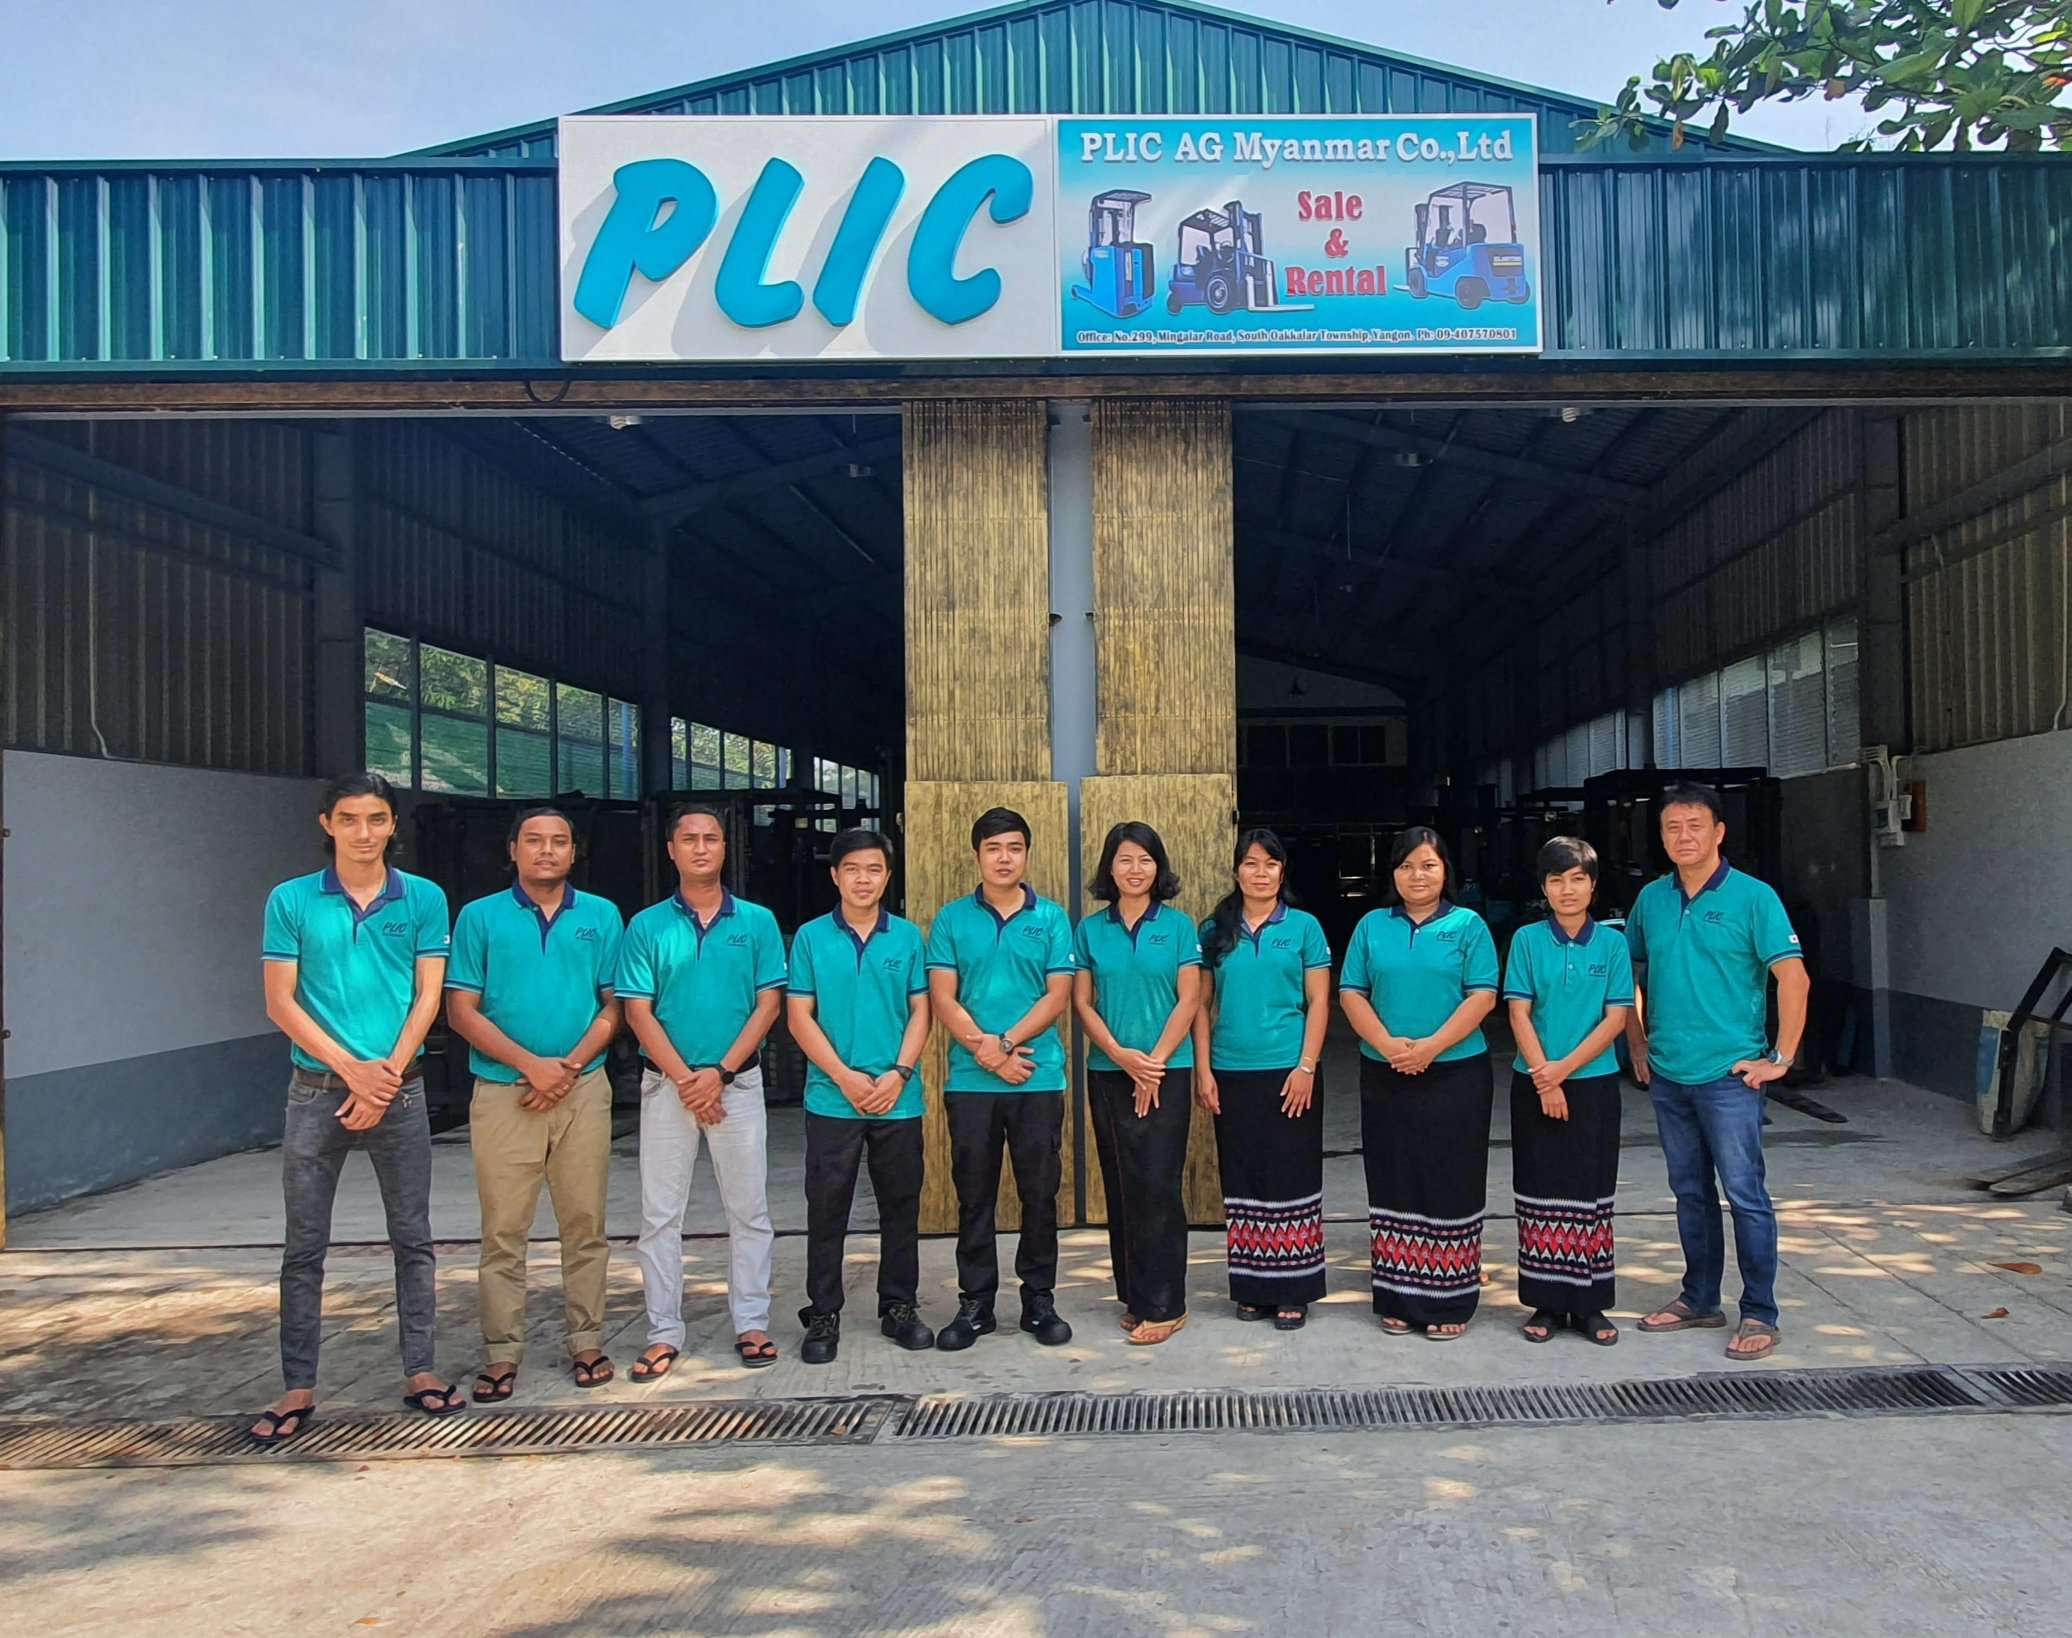 OUR STAFF IN PLIC AG MYANMAR